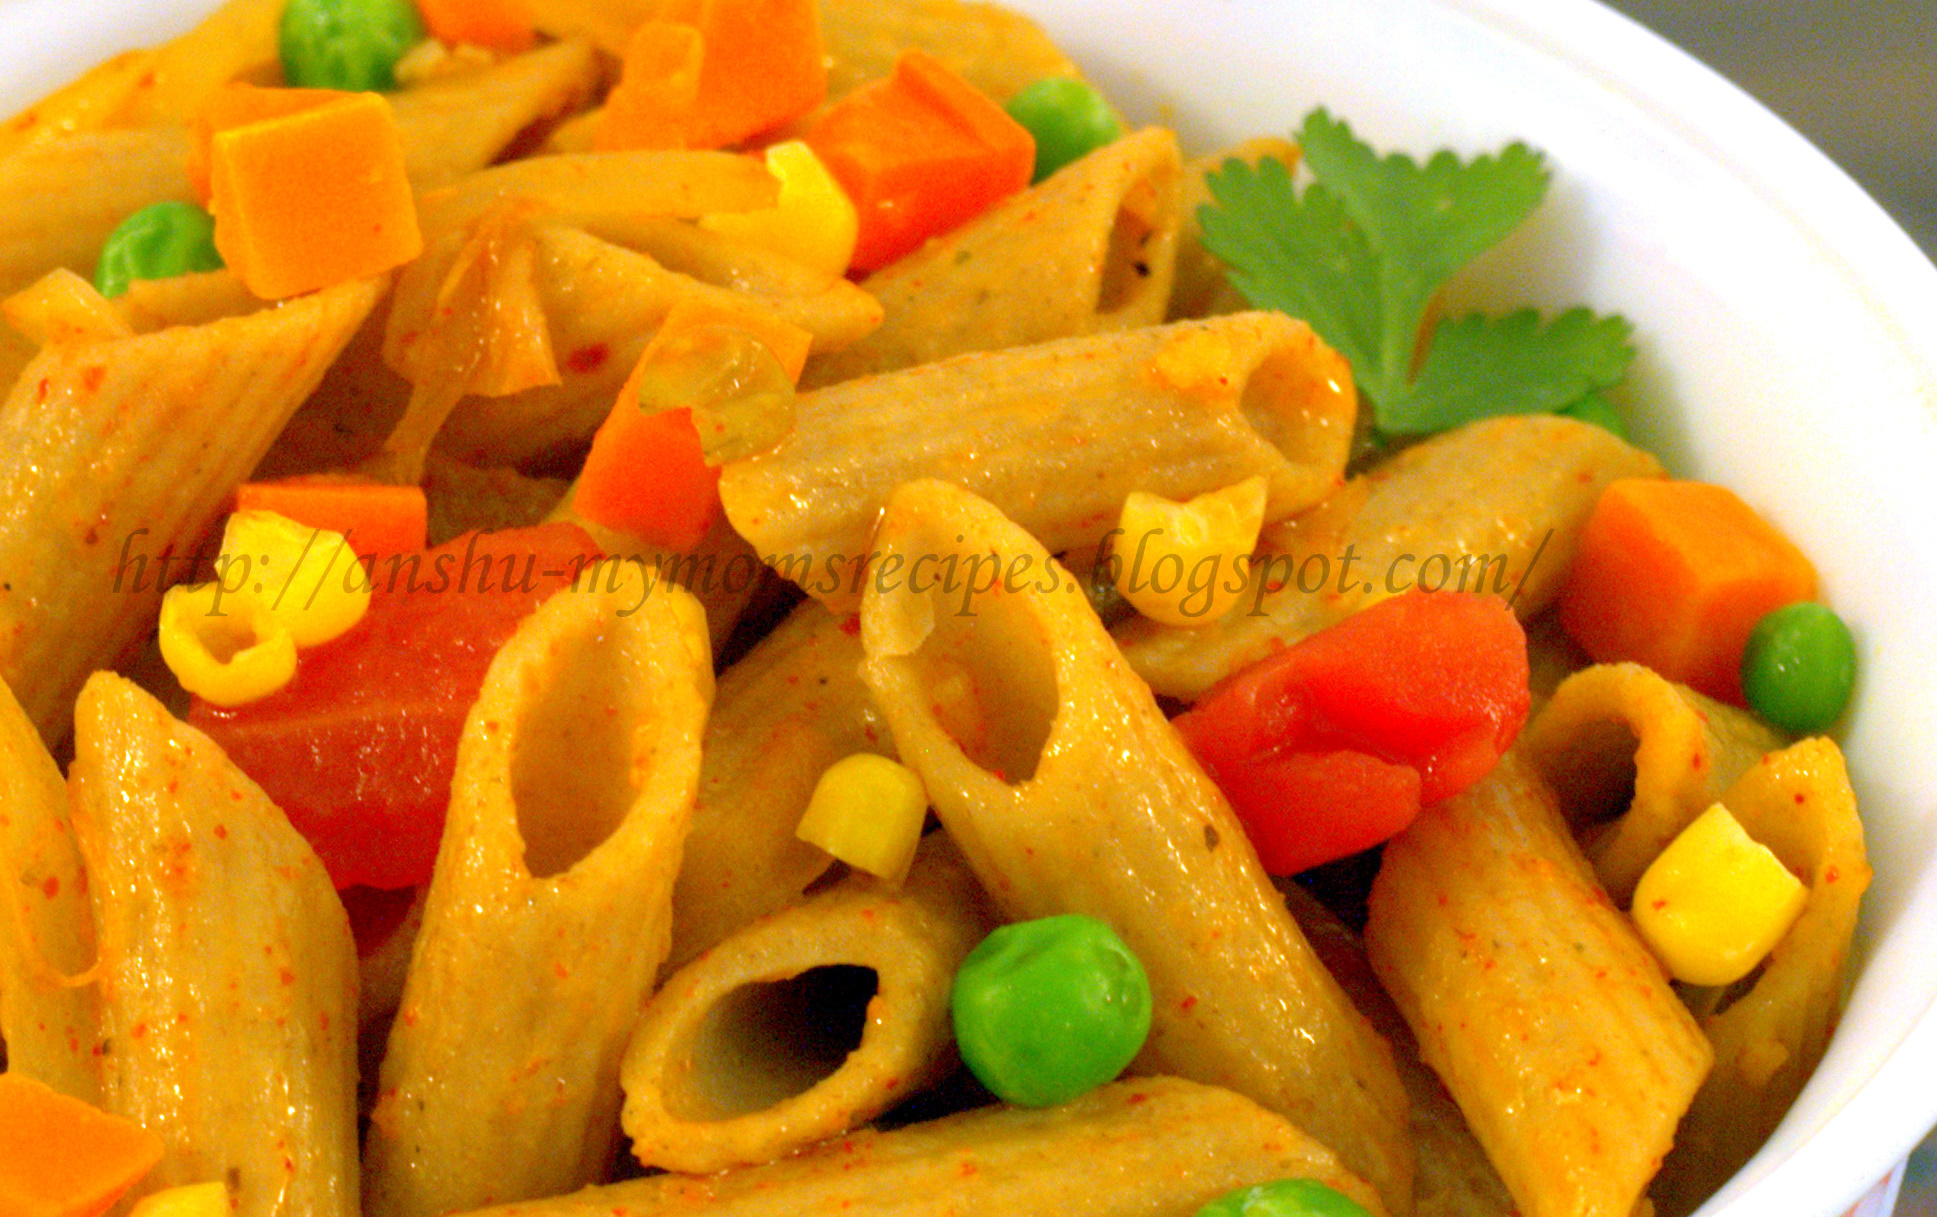 Whole Wheat Penne With Stir-Fry Veggies & Basic White sauce